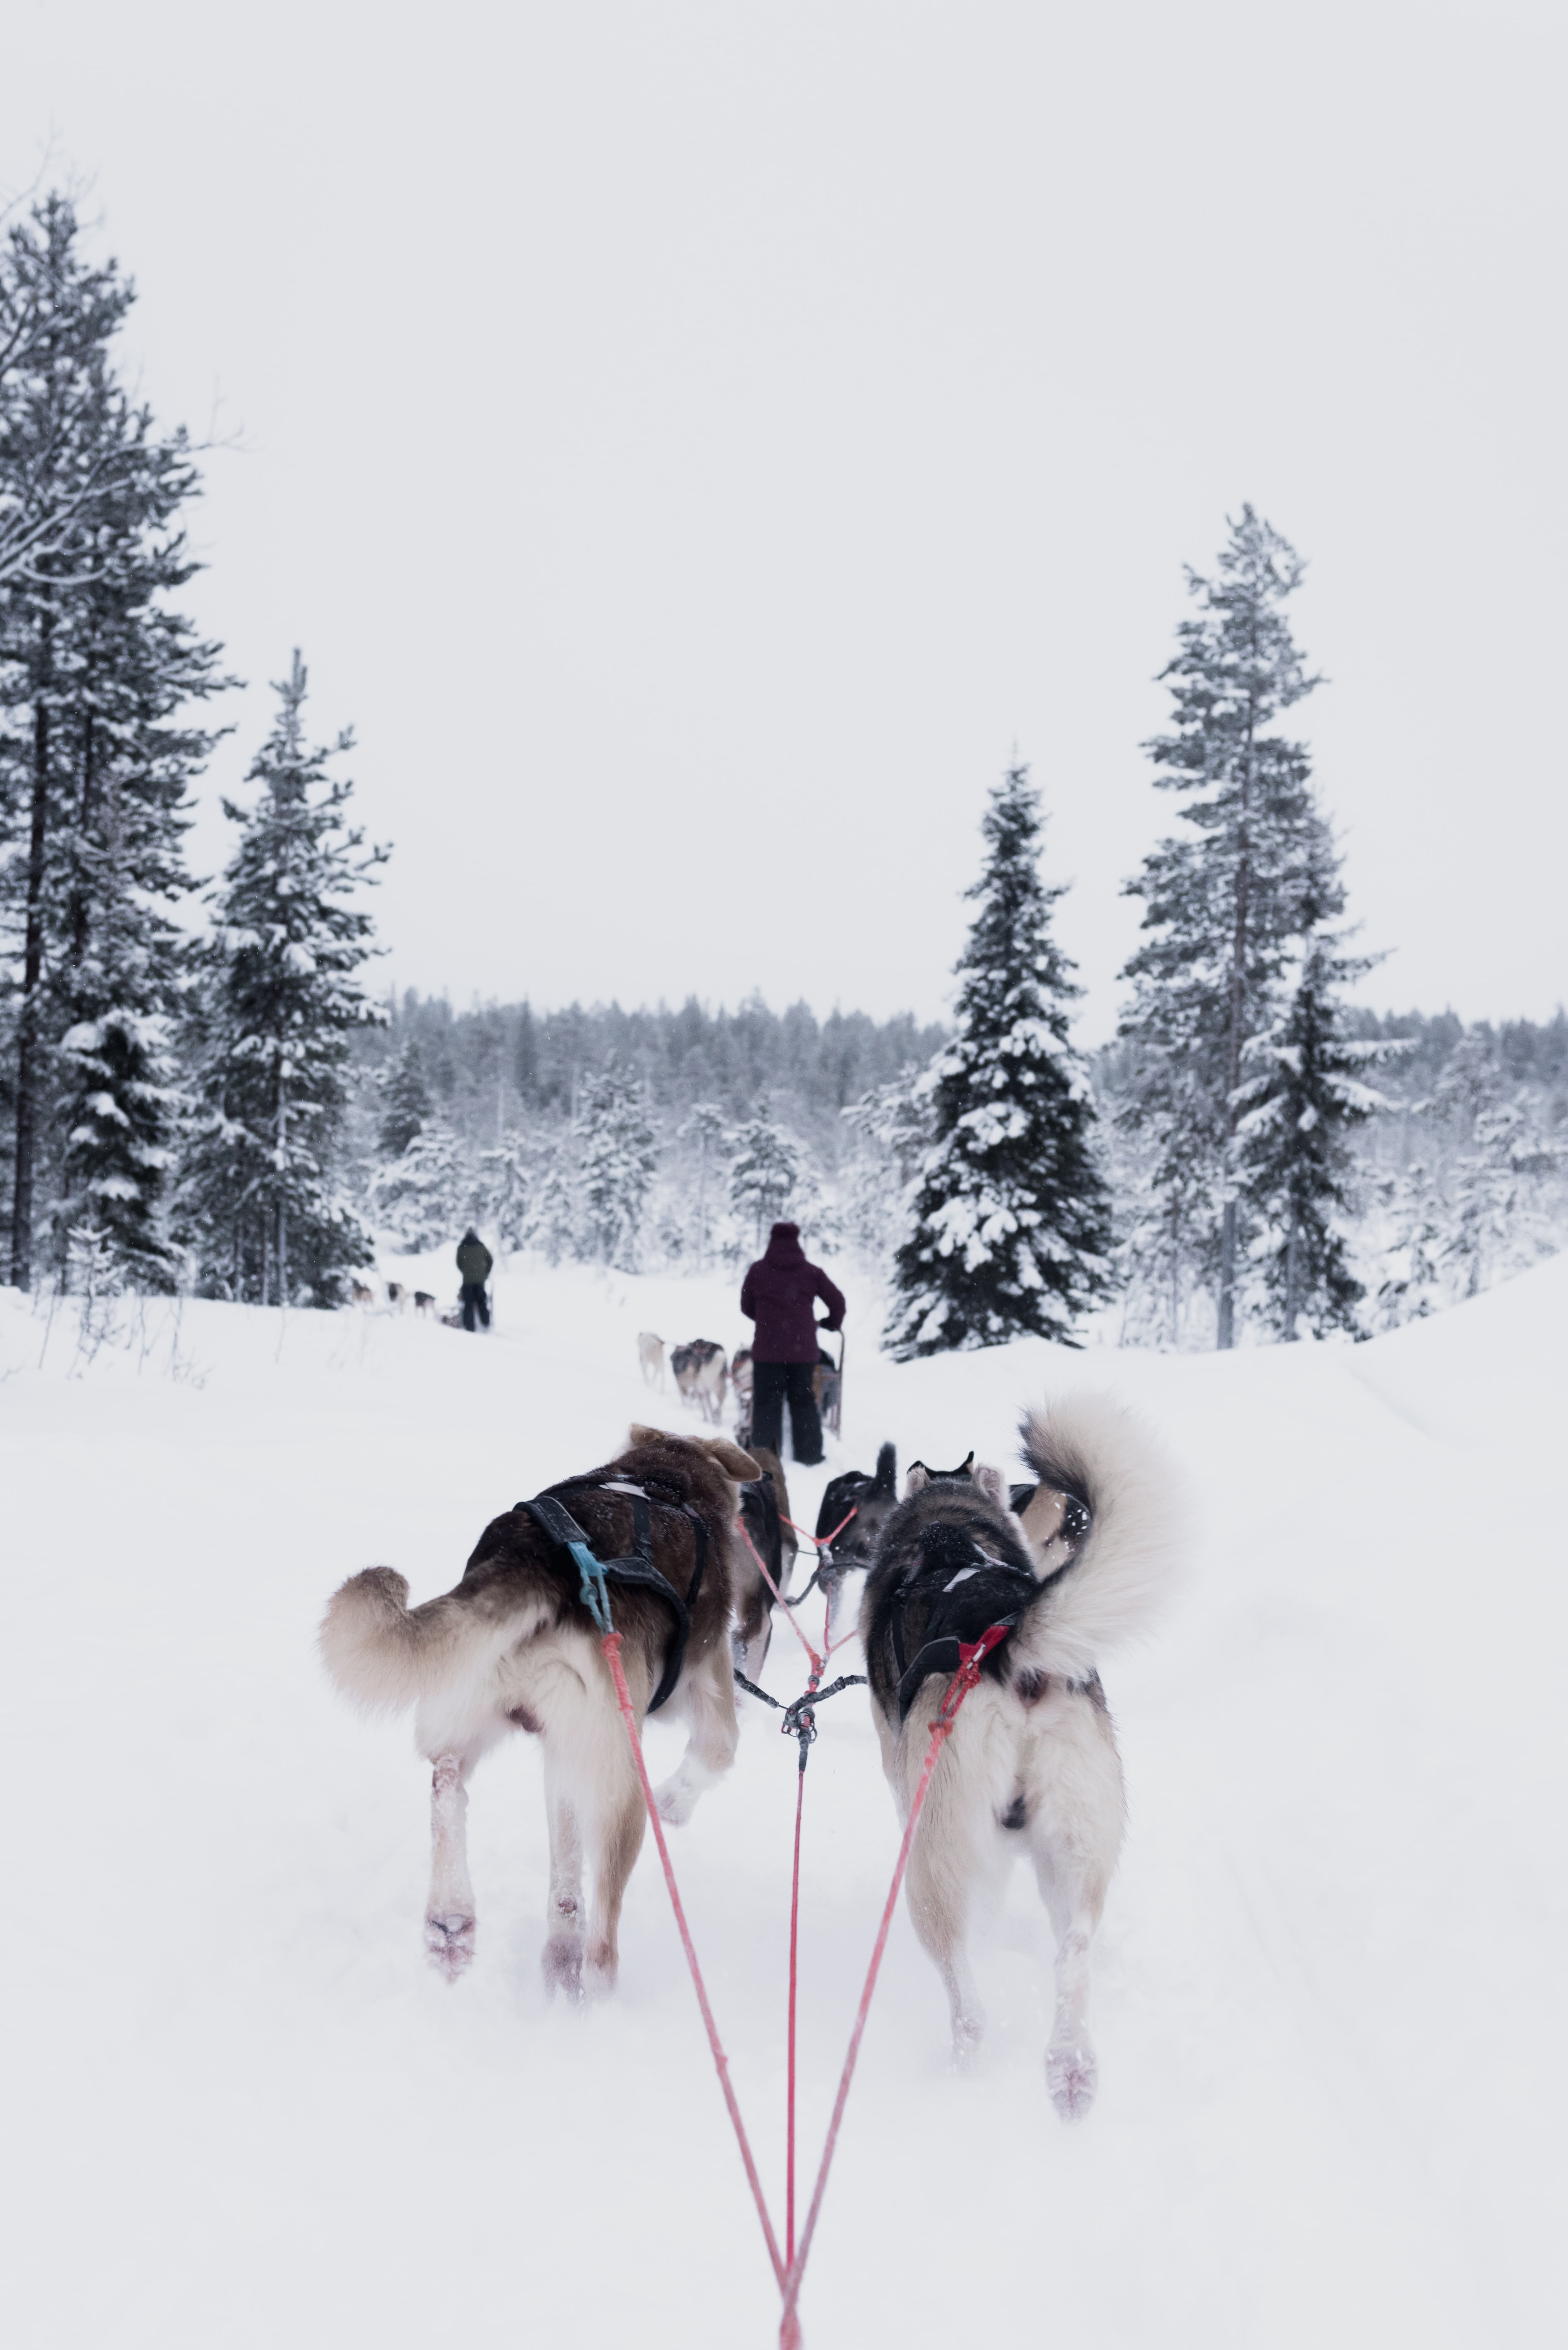 Man with dog sled is followed by two other dogs pulling another sled in Rovaniemi